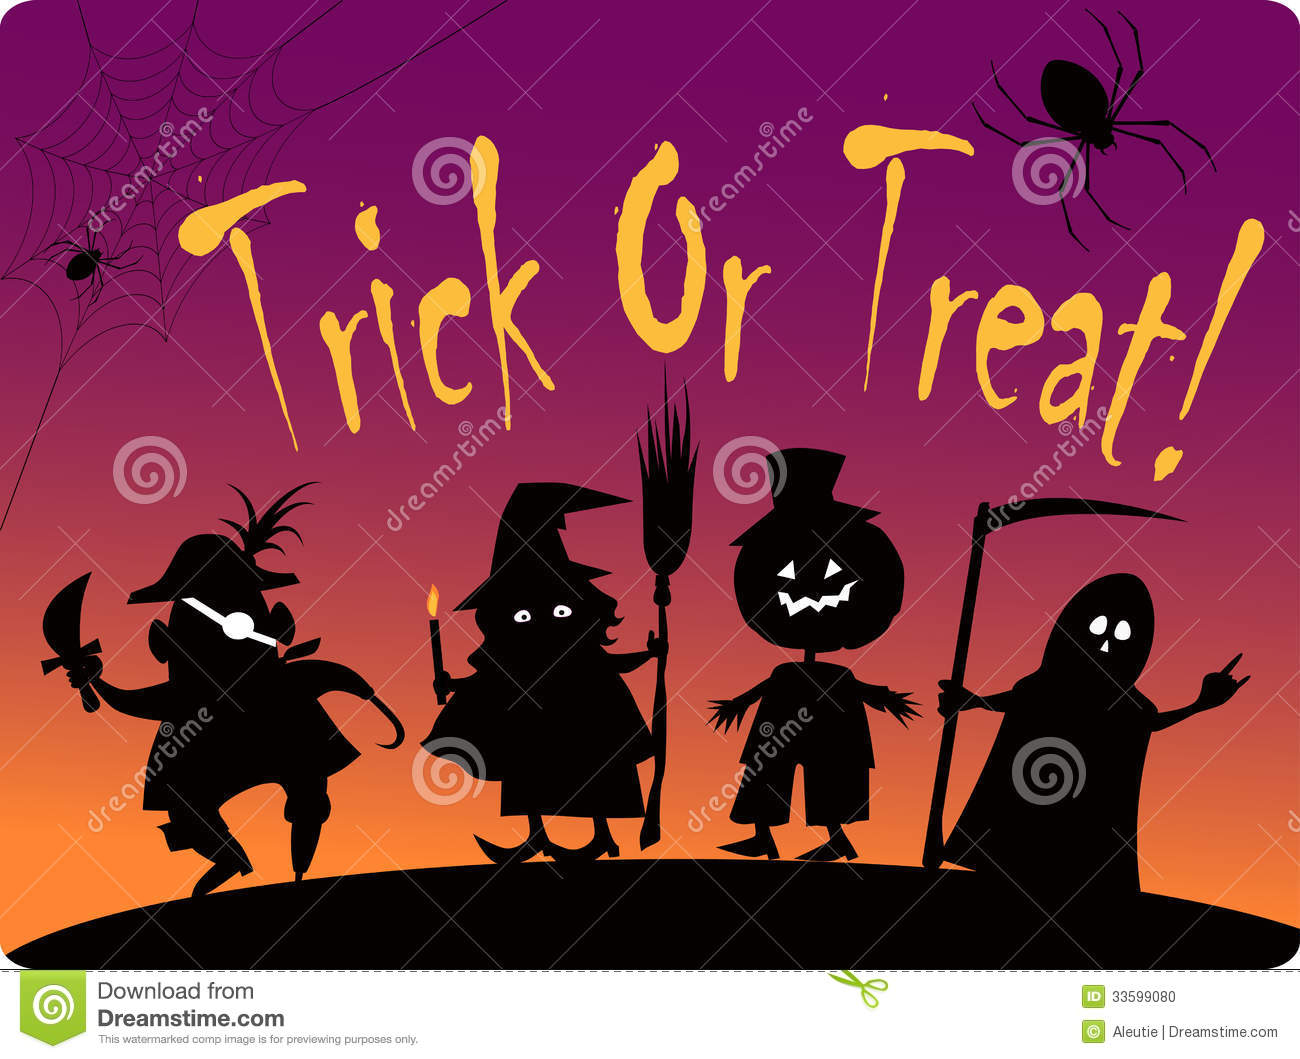 ... cute Halloween costumed characters: Pirate, Witch, Great Pumpkin and